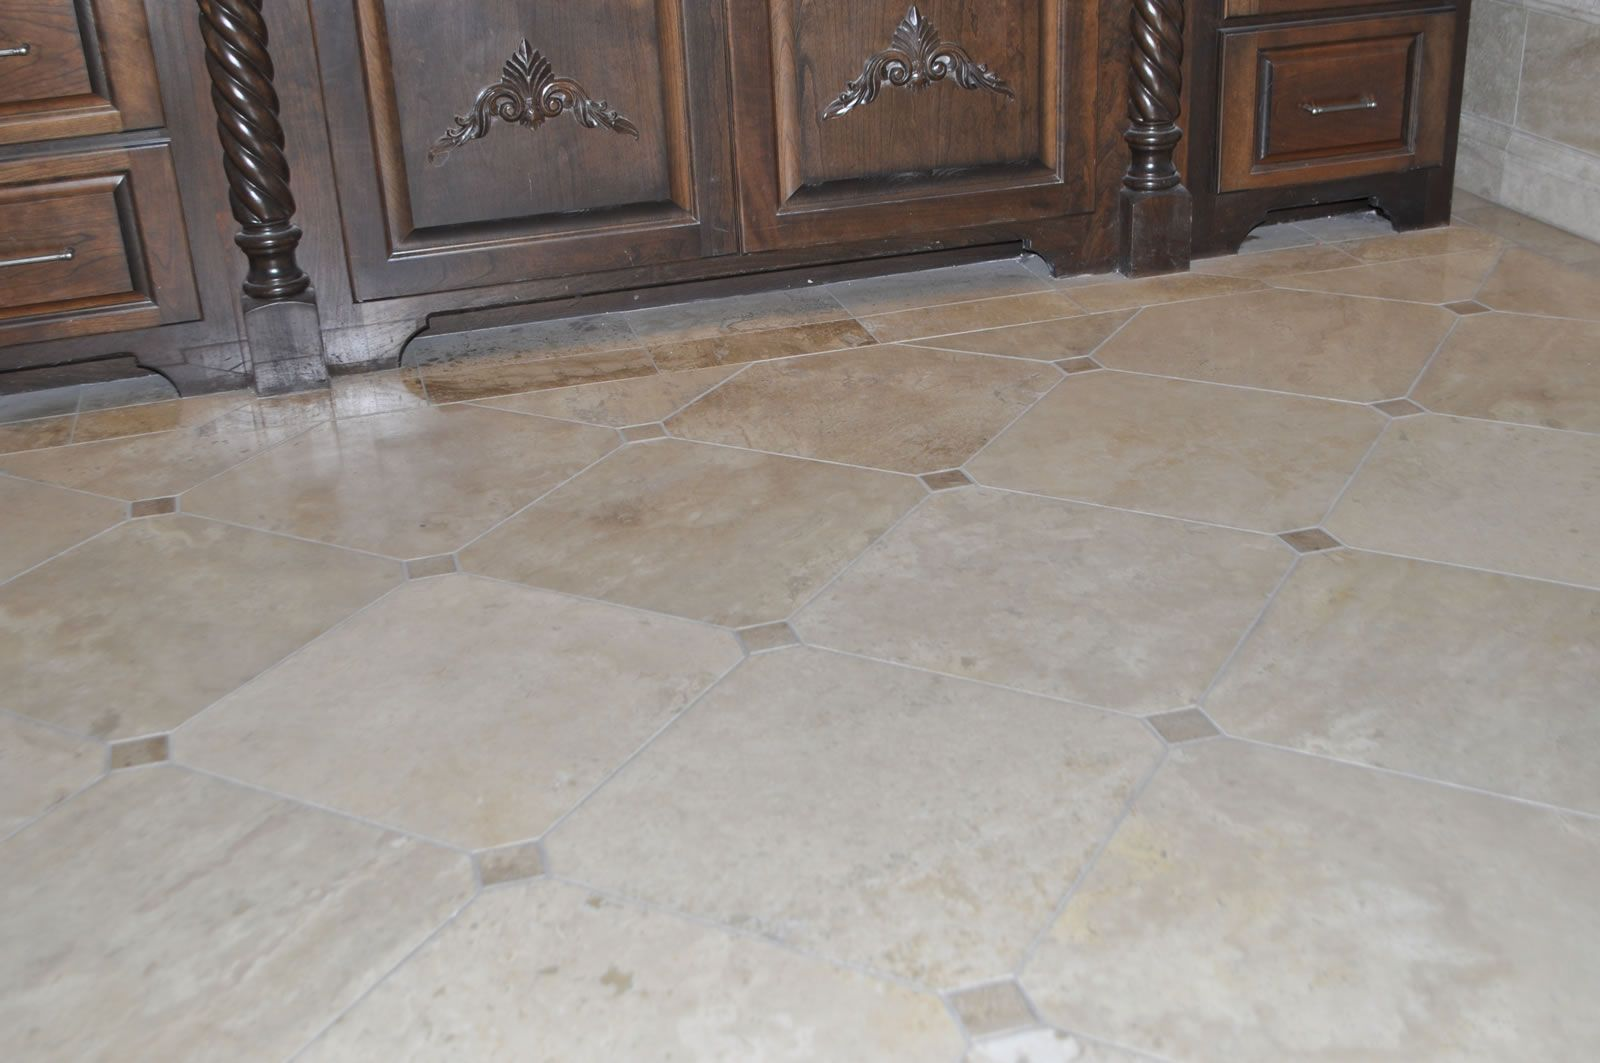 Ceramic Tiles For Kitchen Floor Porcelain Tile In Living Room Ceramic Porcelain Stone Mosaic